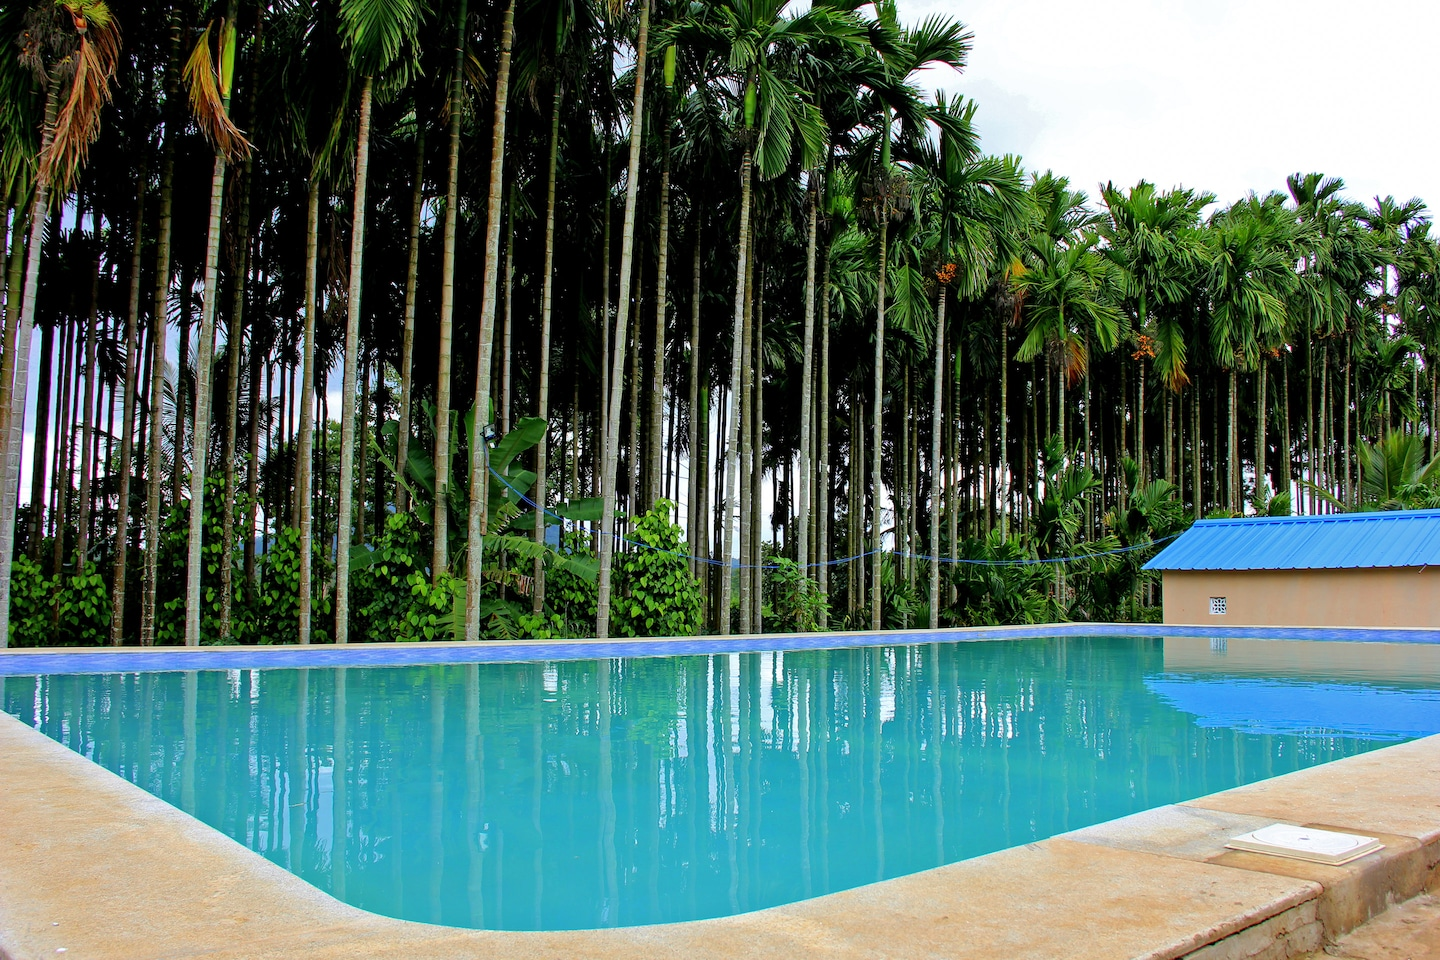 Oyo 6364 resort kushalnagar budget coorg book 7648 oyo Hotels in coorg with swimming pool